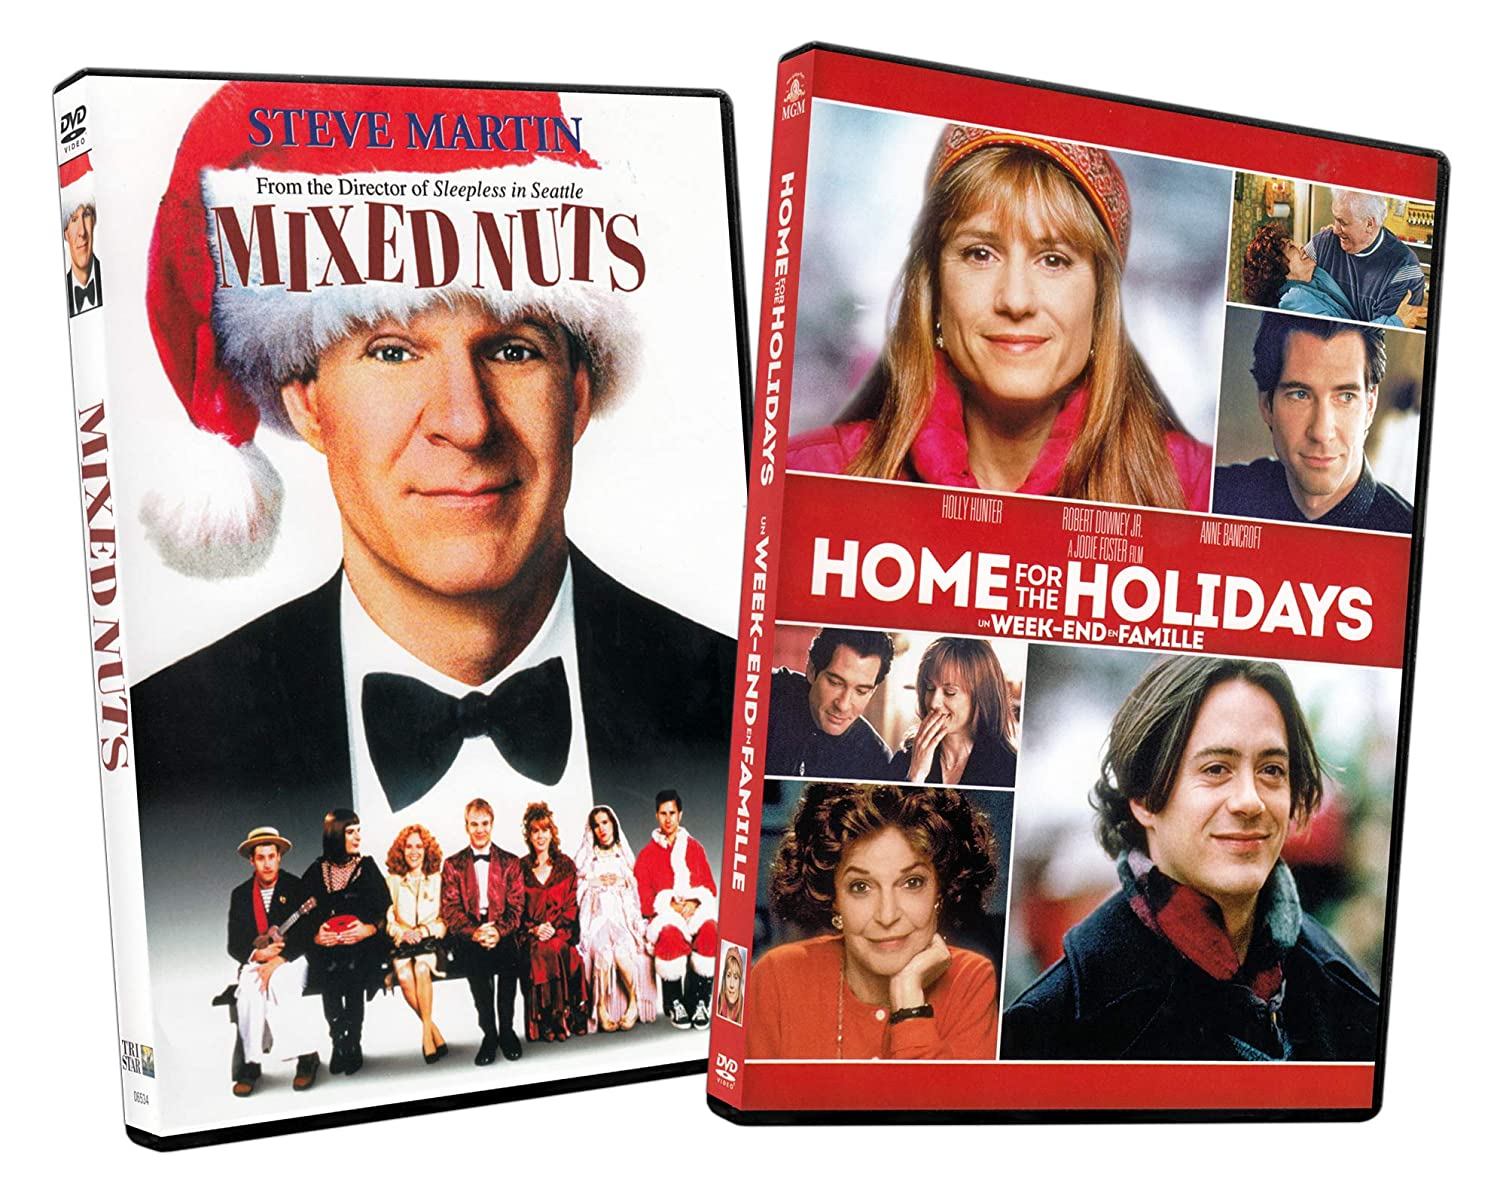 Amazon.com: Mixed Nuts / Home For the Holiday (2-Pack ...